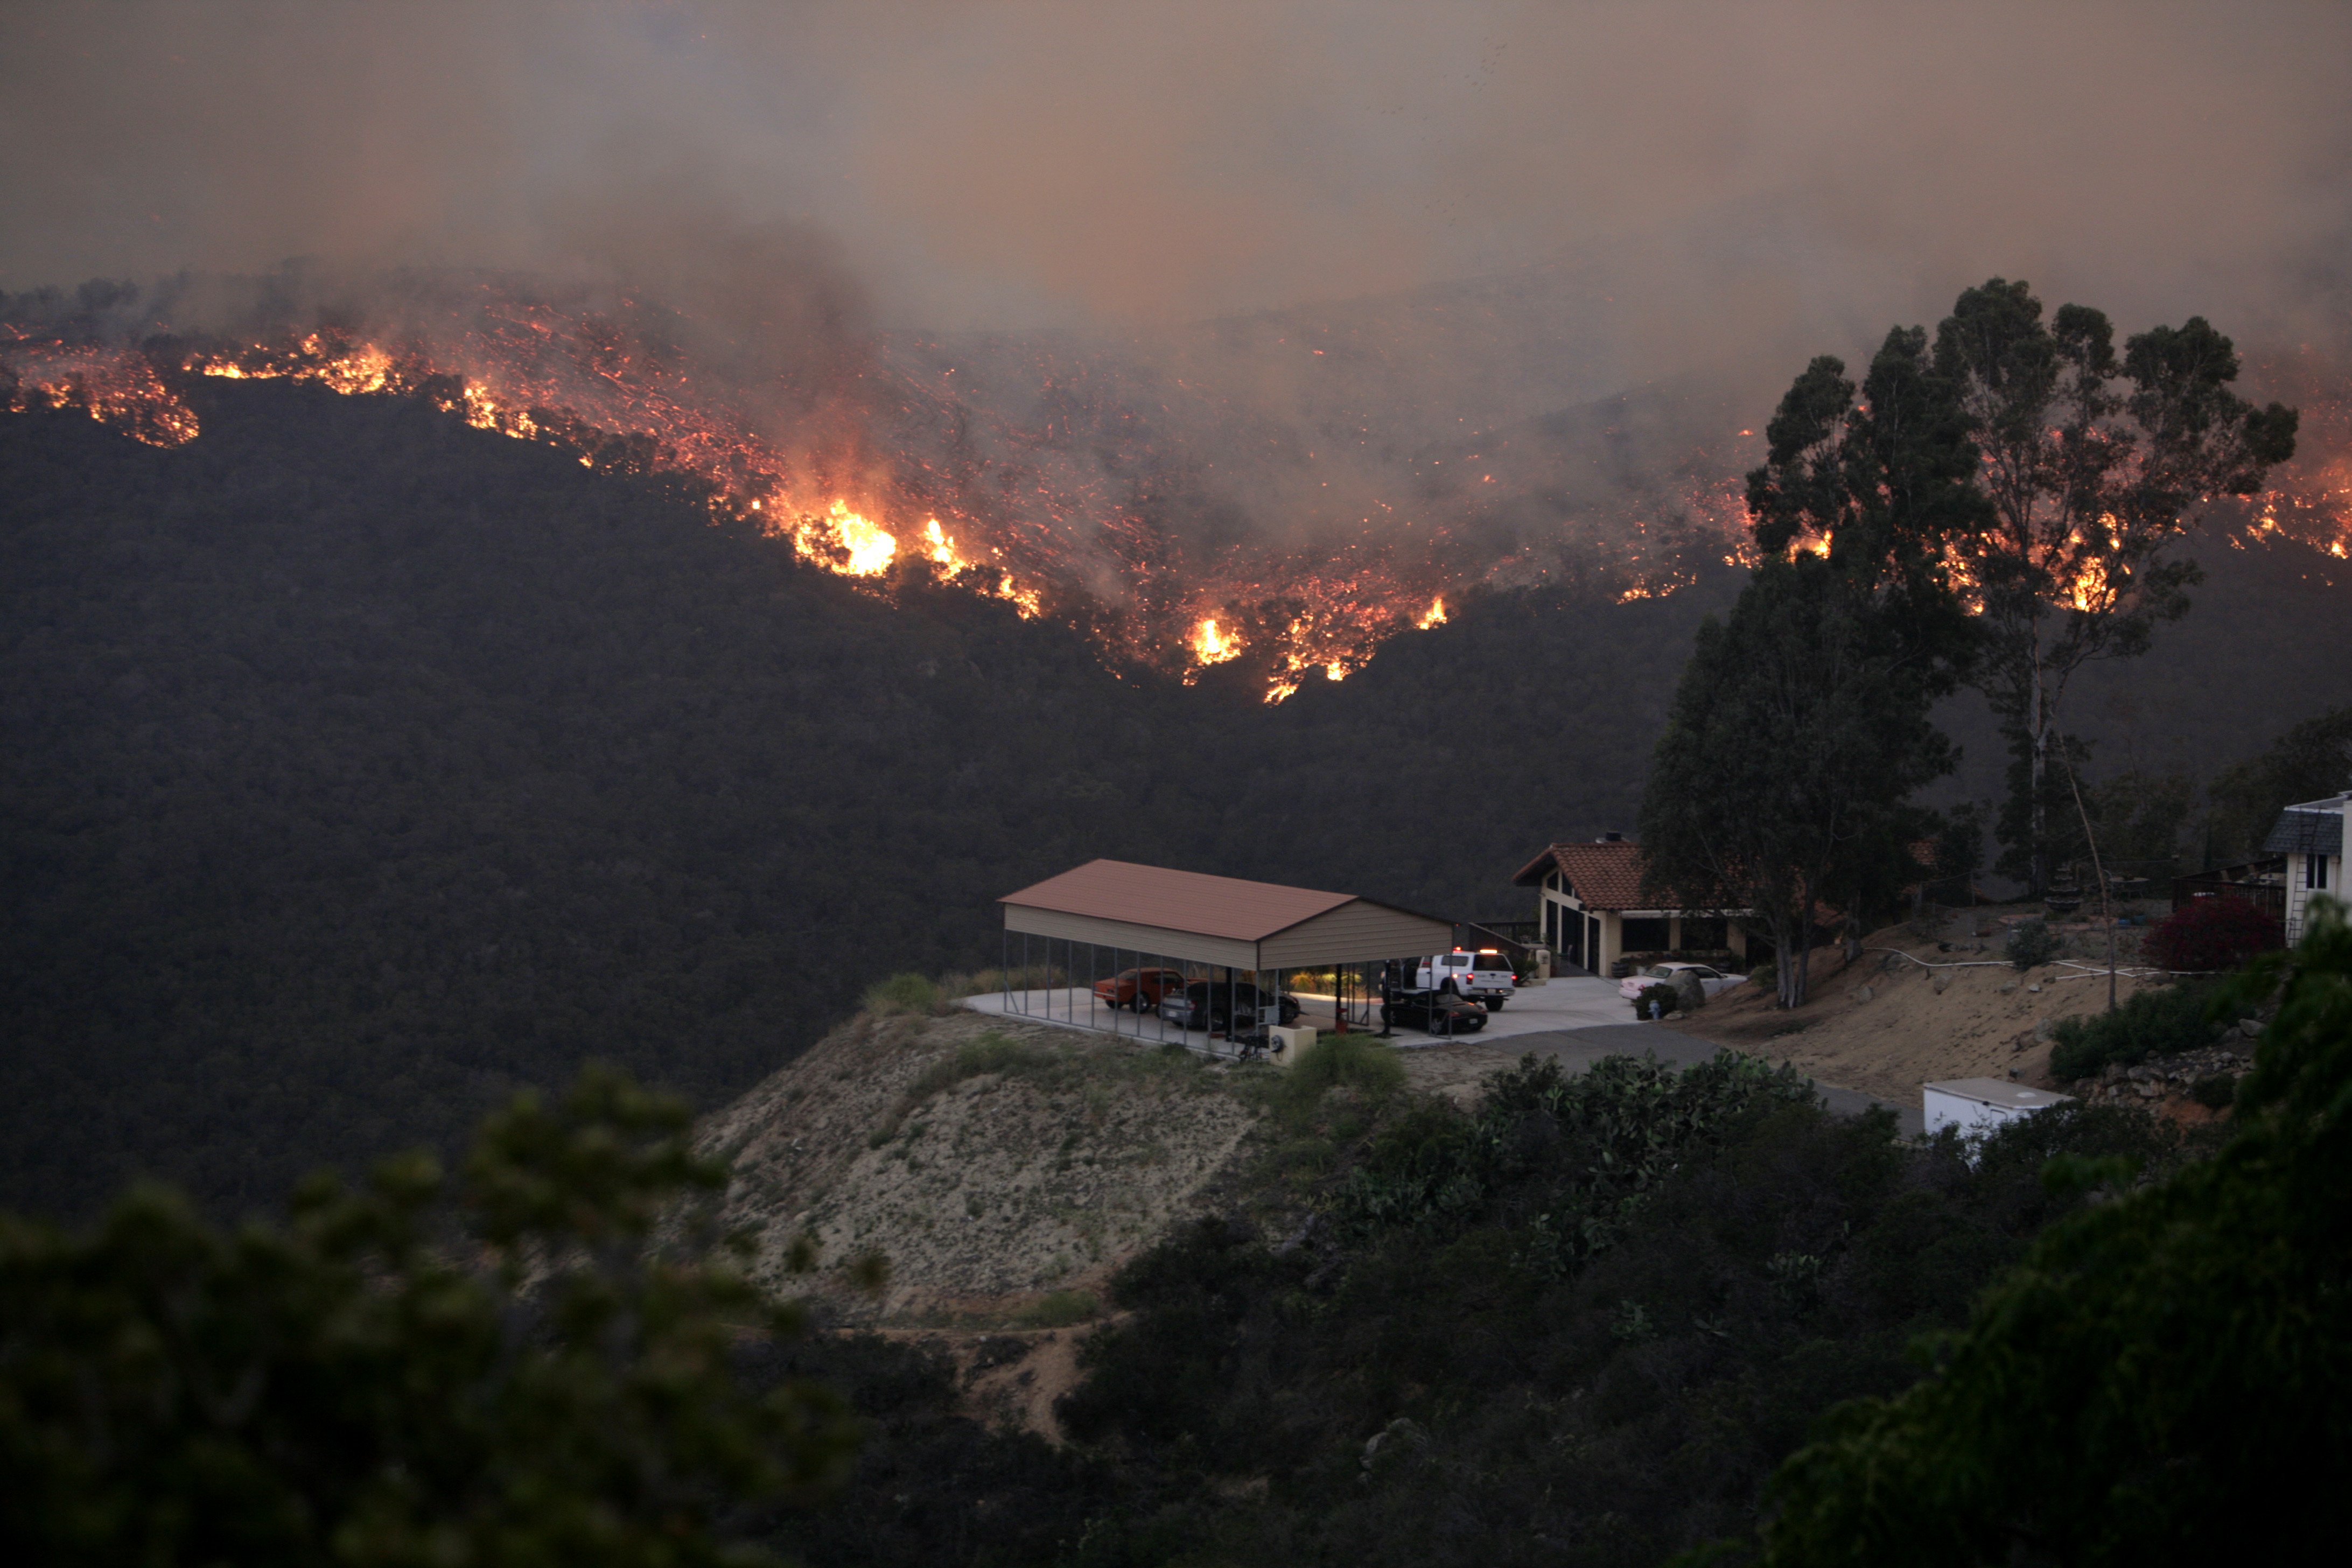 Fire moves quickly through the Coronado Hills in San Marcos, San Diego county on May 14, 2014.